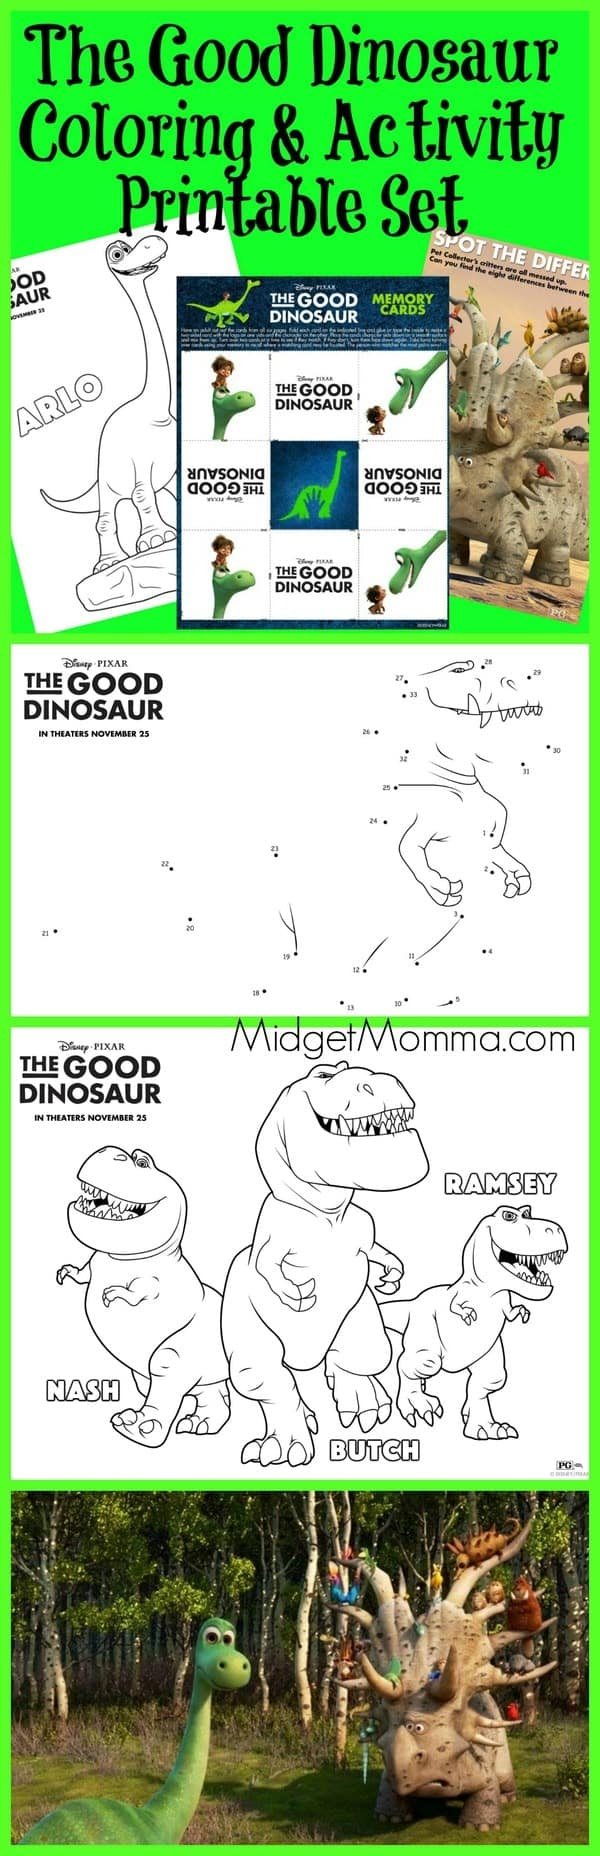 The Good Dinosaur Printable Coloring Pages